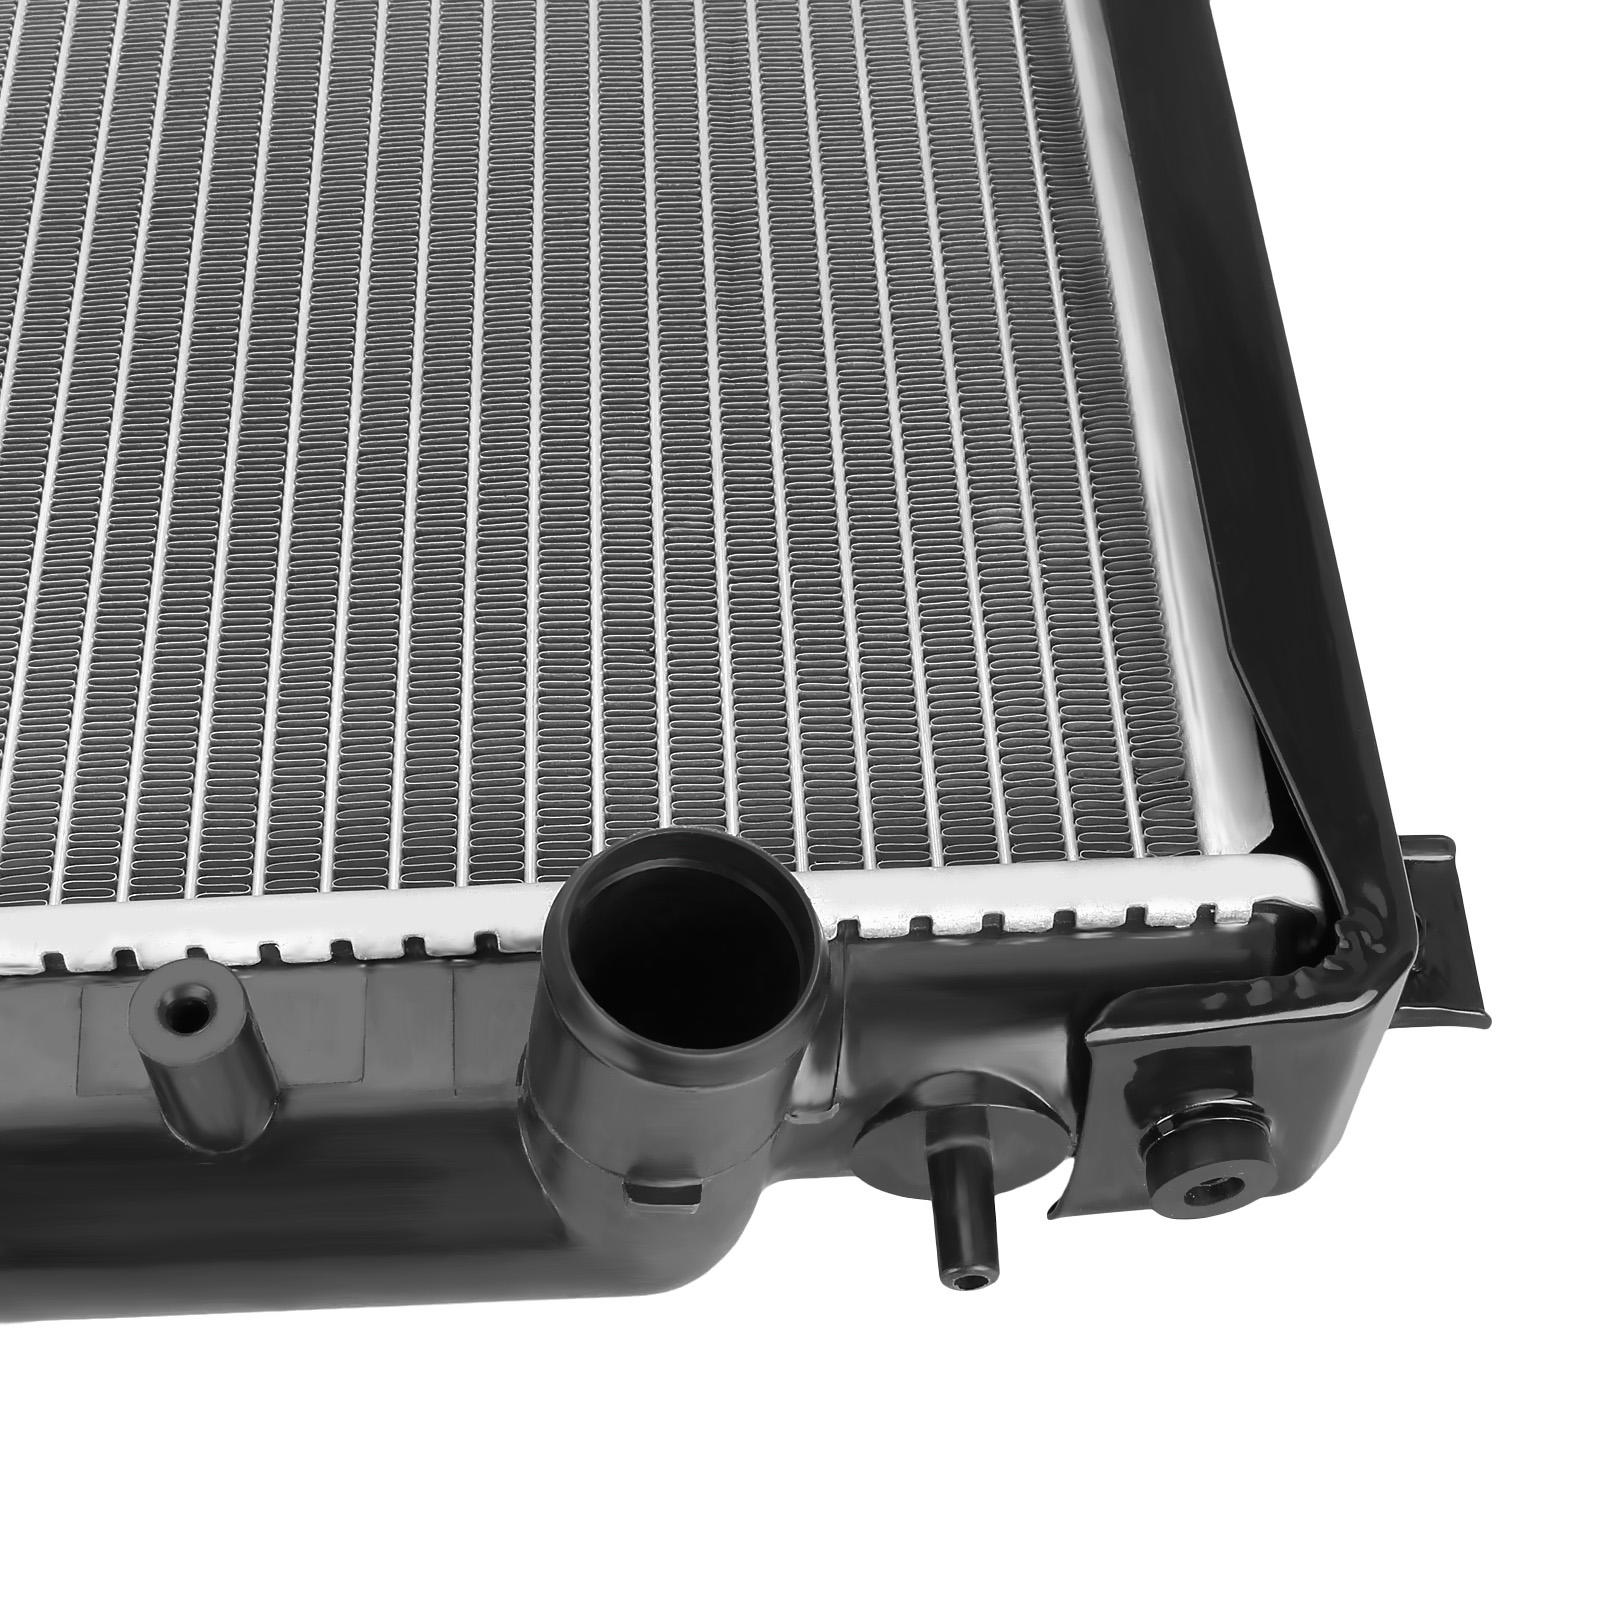 Radiator For Nissan Maxima A33 Series 4Dr 1994-1999 Auto/Manual AU Stock New